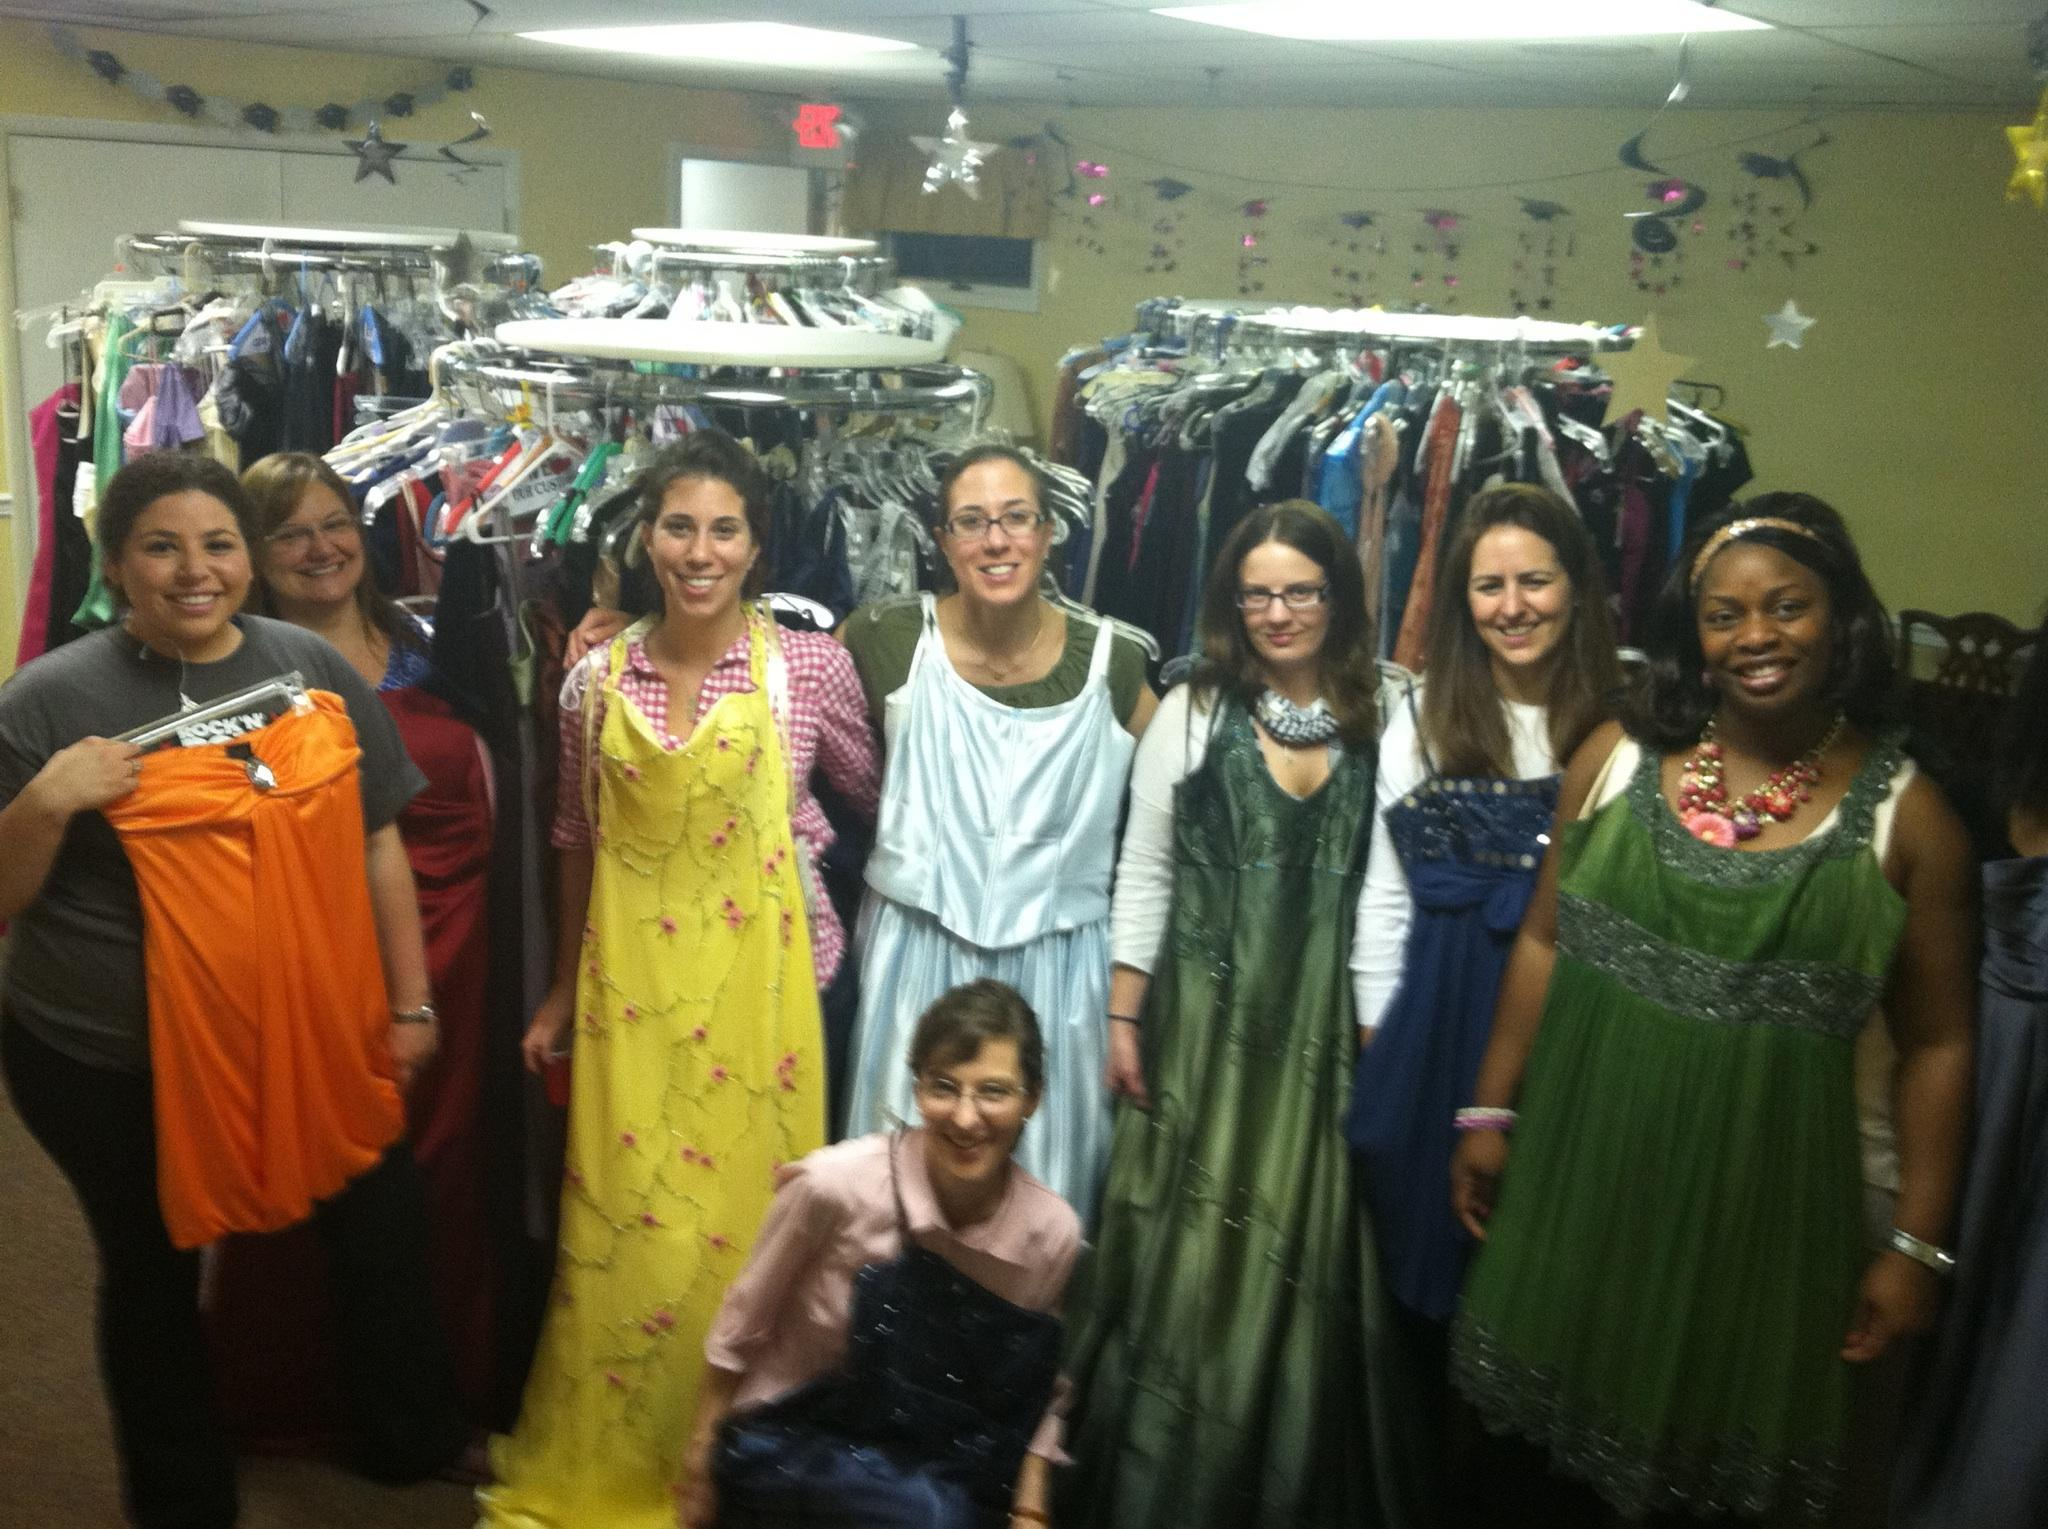 8f1cde13814c2f8d493e_committee_with_dresses_2.jpeg